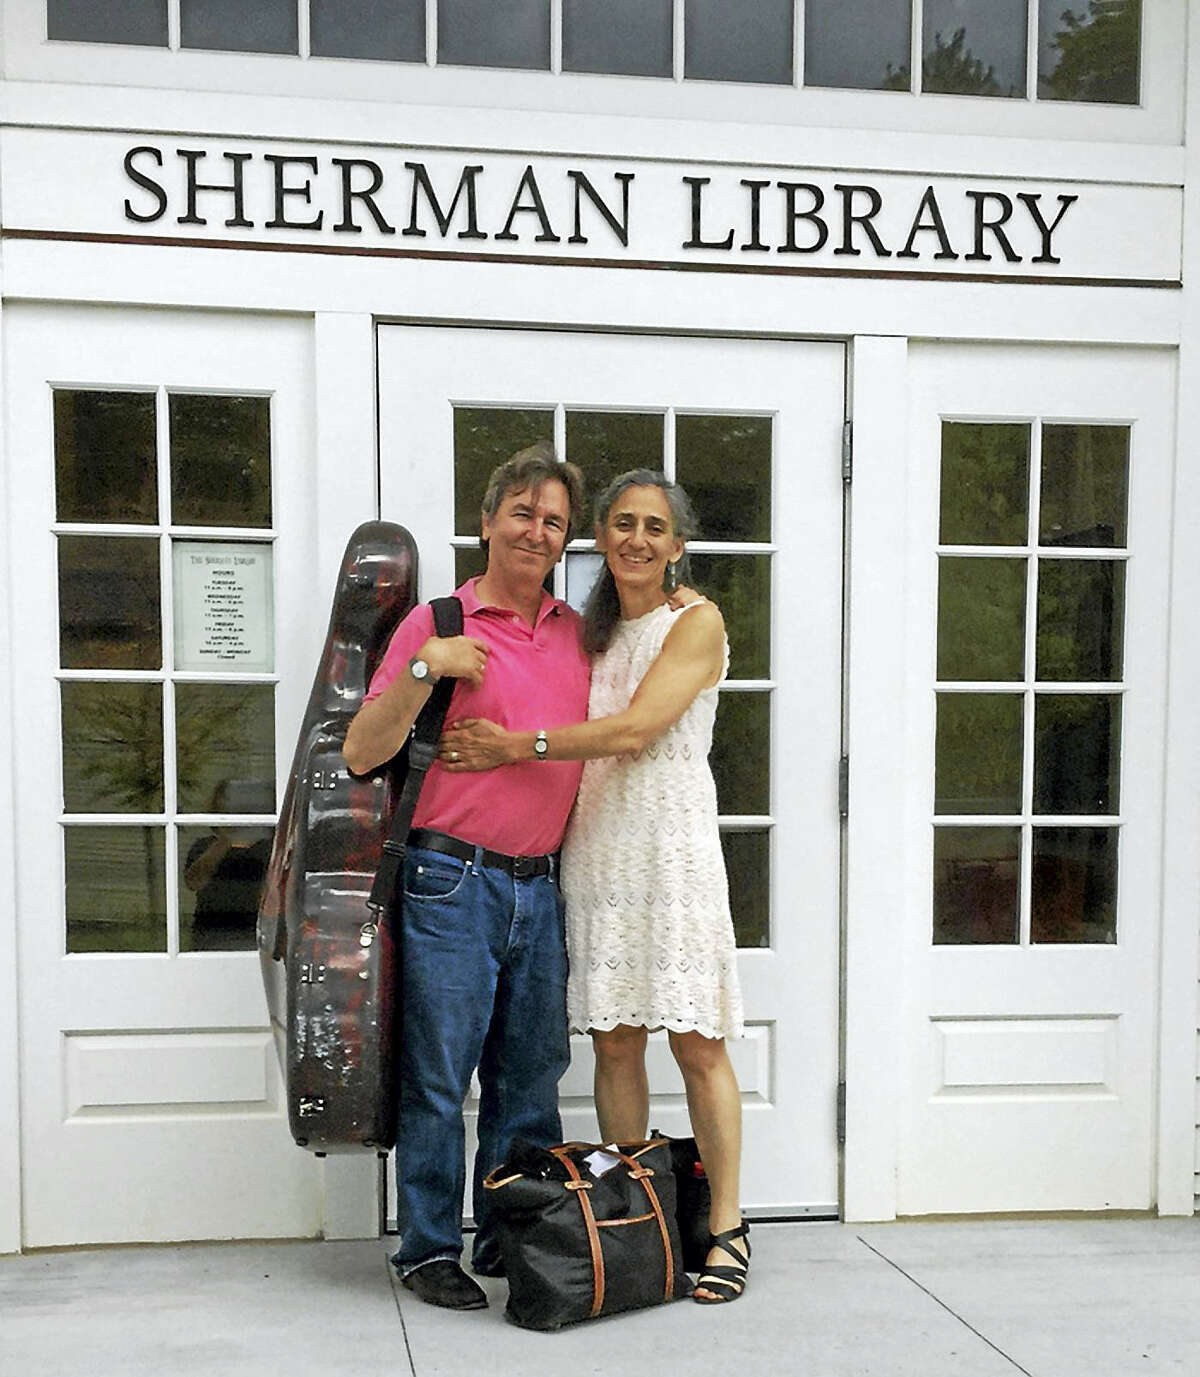 """Contributed photo - Sherman Chamber Ensemble On Saturday, August 13 at 2 p.m. The Sherman Chamber Ensemble presents """"Famous Children's Stories in a Musical Setting"""" in a free concert for families and kids of all ages at the Sherman Public Library Barn, 1 Sherman Center, Sherman. To reserve free tickets email info@shermanchamberensemble.org or call 860-355-5930. Subject to seating availability, walk-ins will be welcome."""